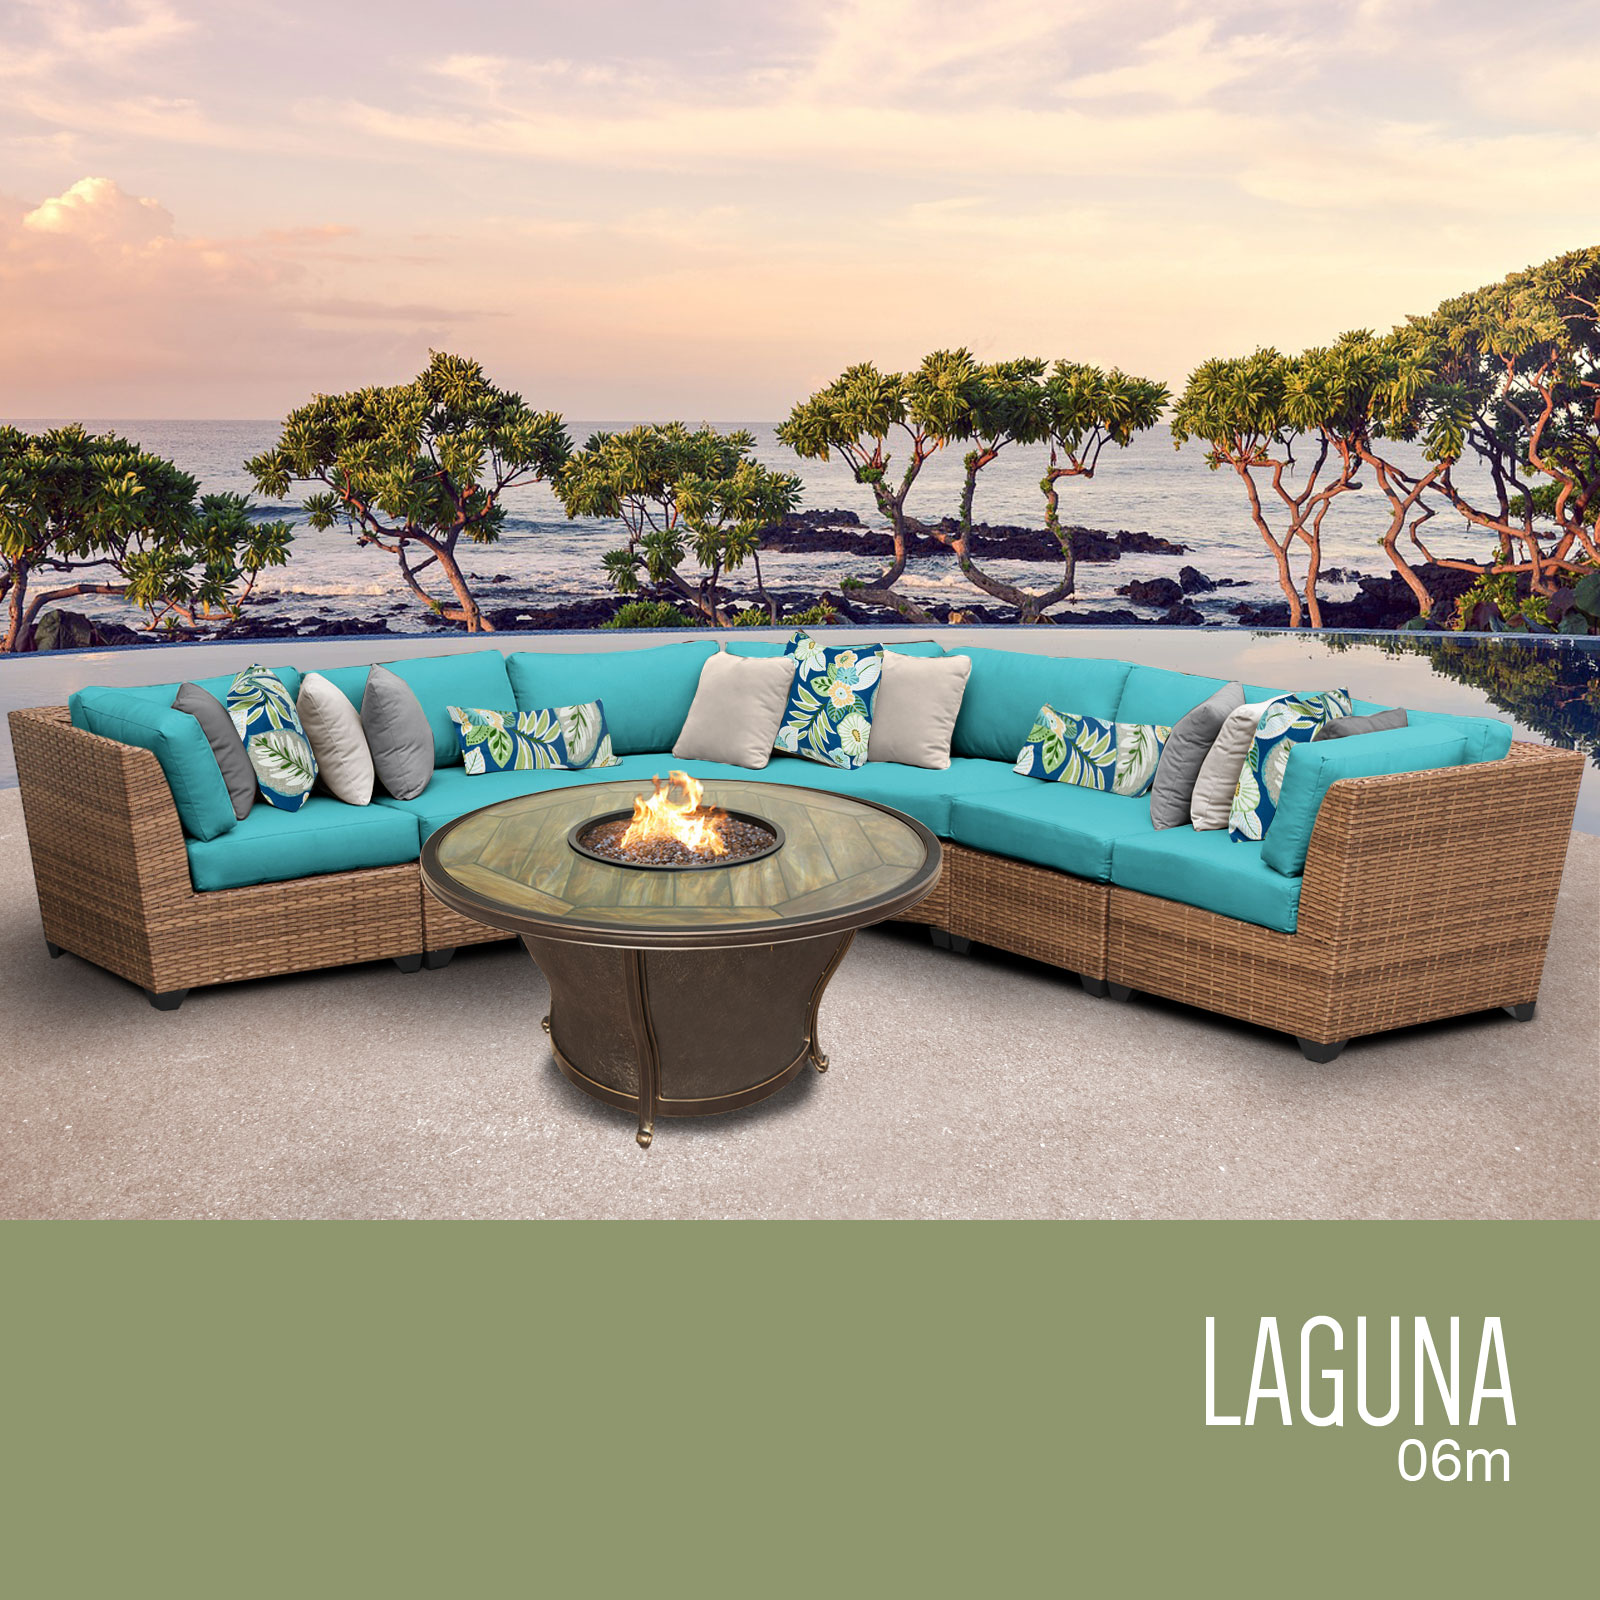 Laguna 6 Piece Outdoor Wicker Patio Furniture Set 06m